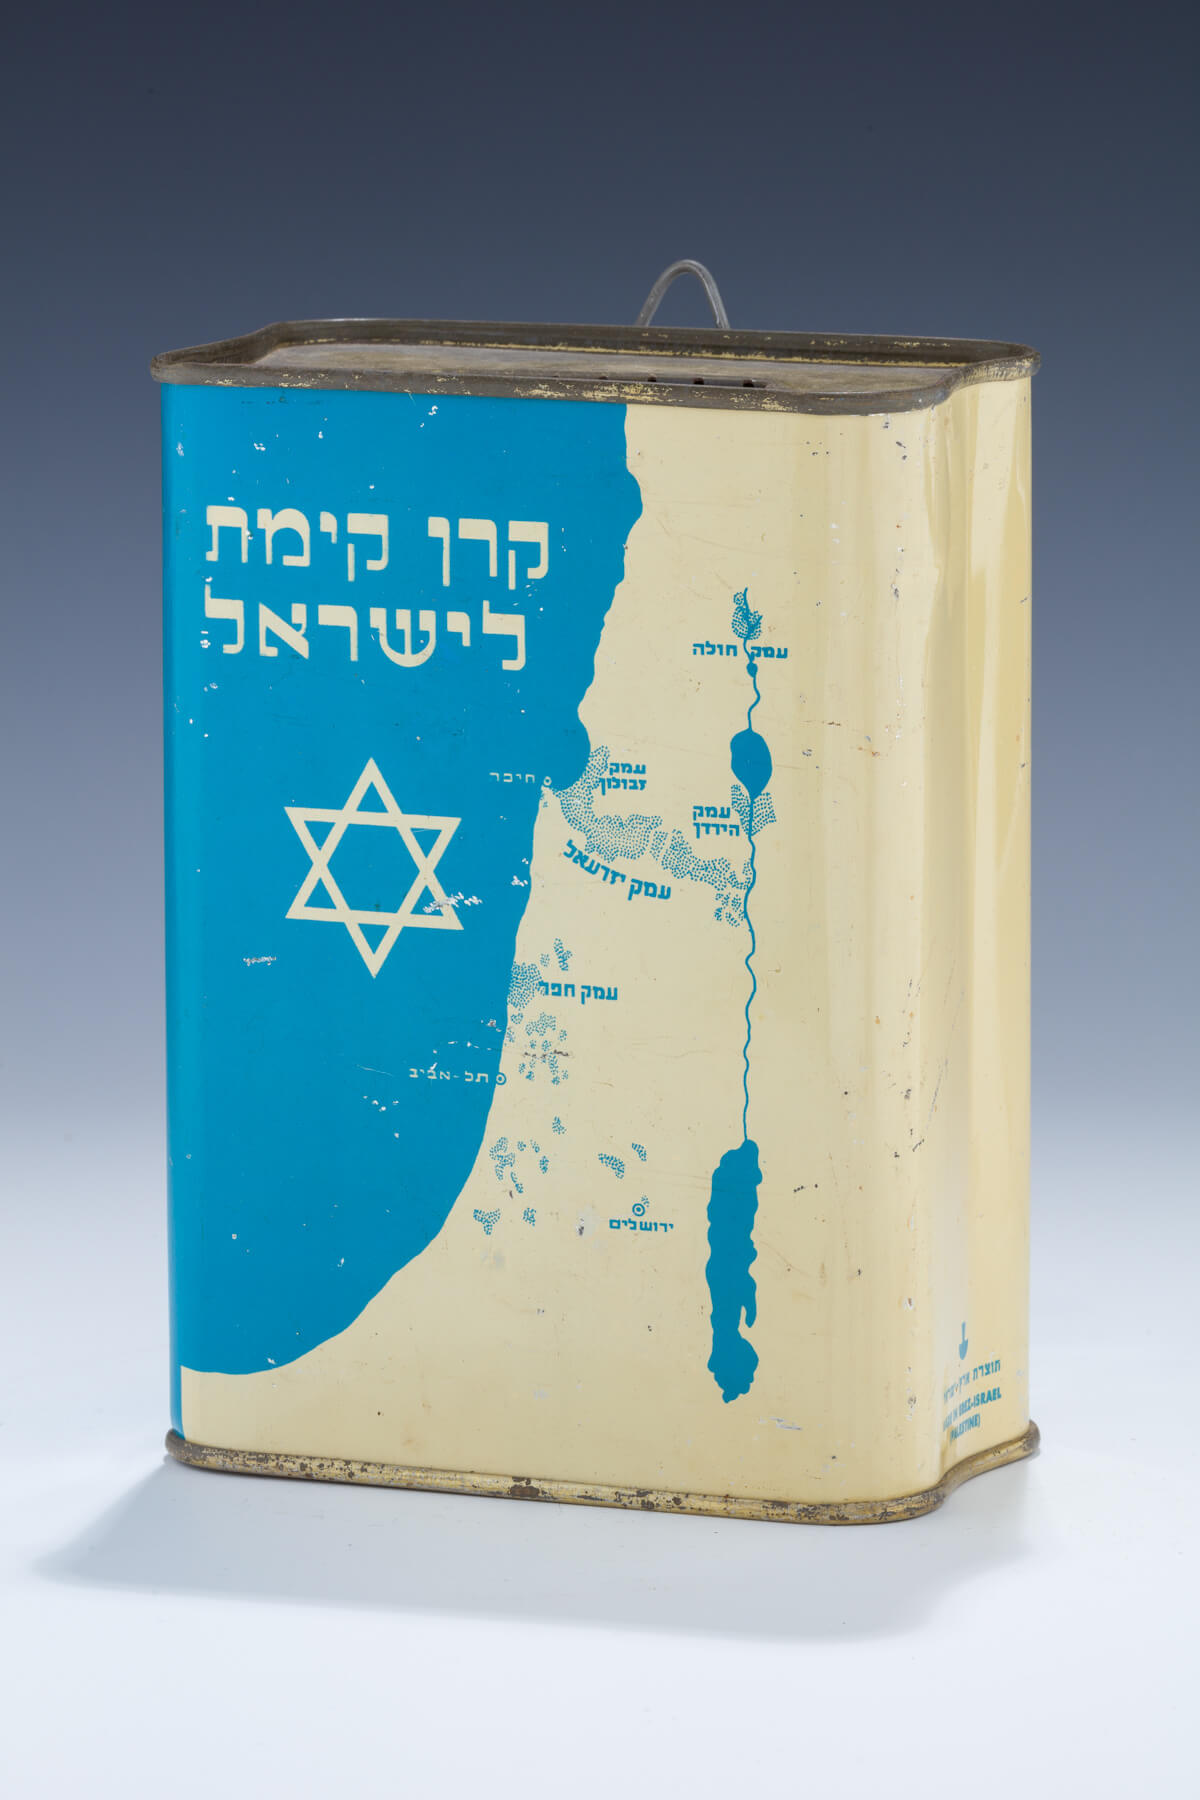 080. A Large Tin Jnf/Kkl Charity Box